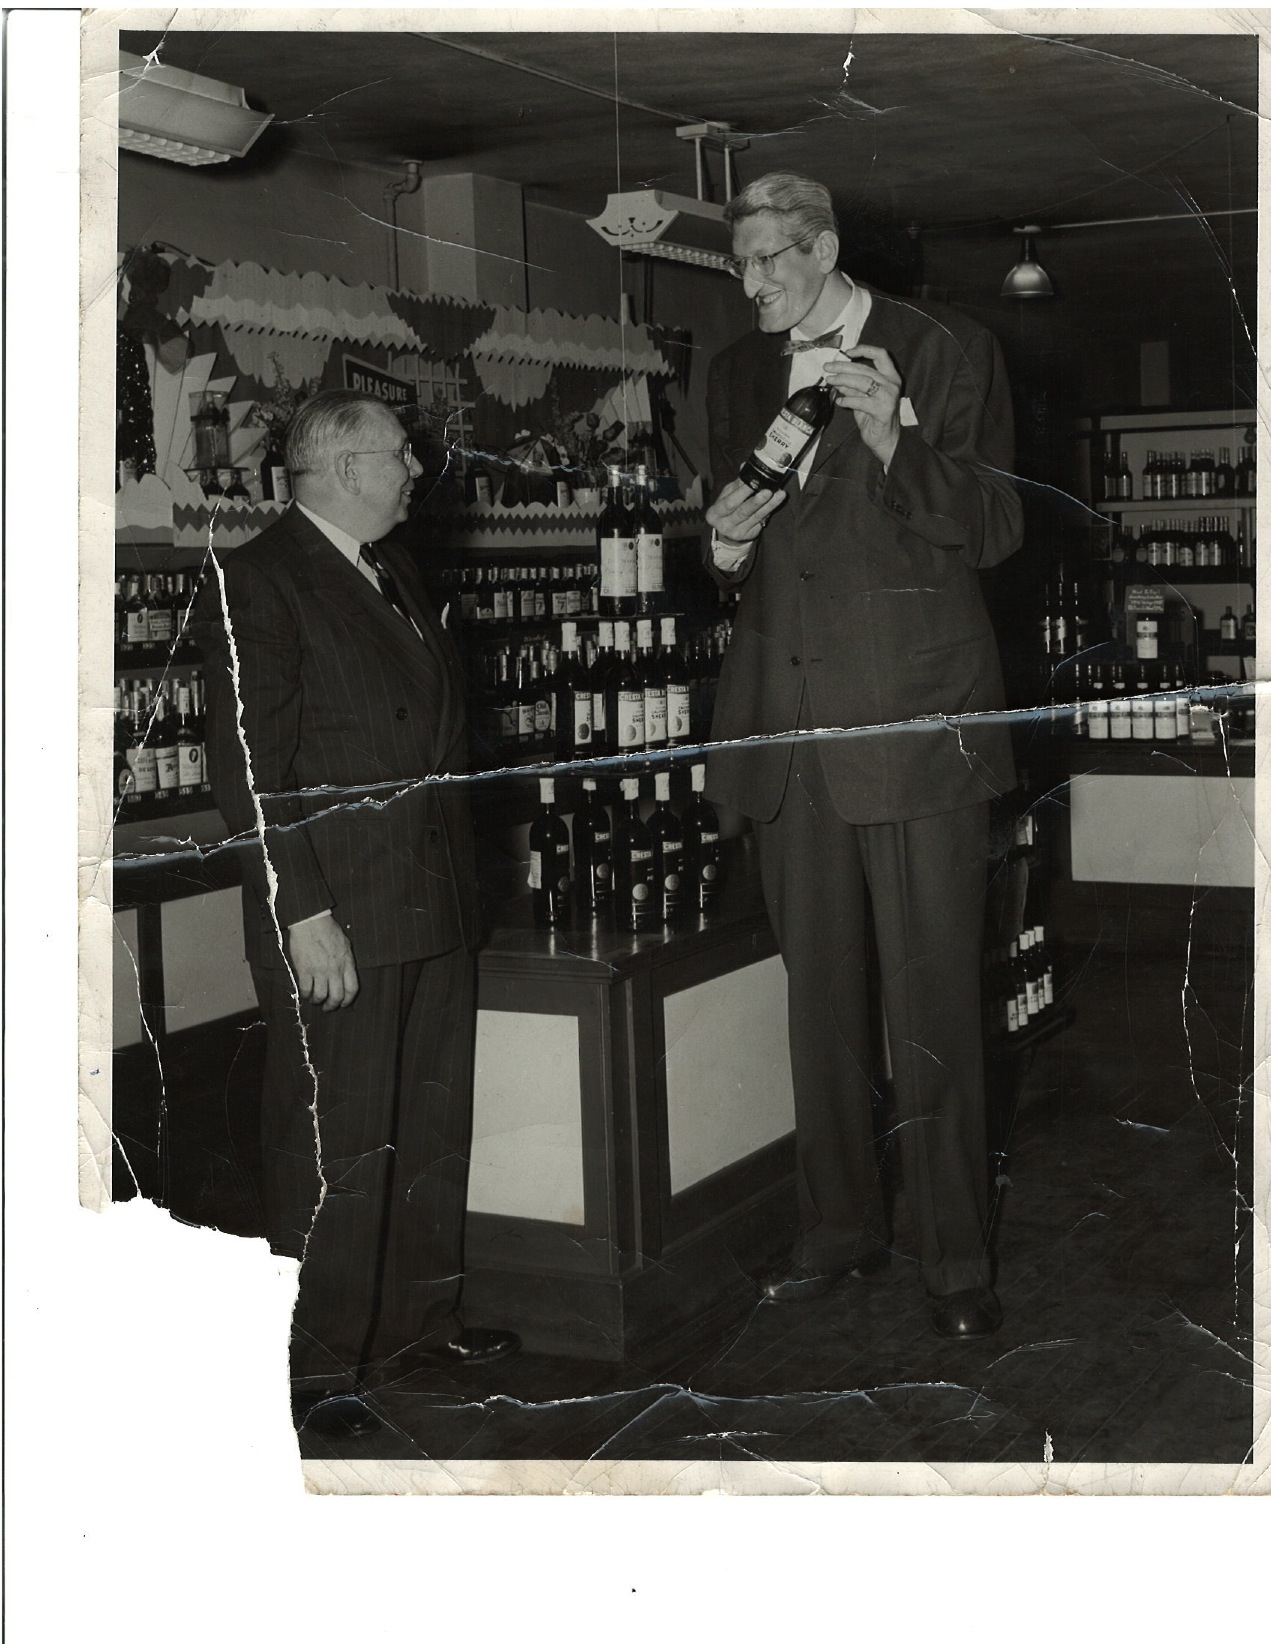 Bremer's had a visit from the Tallest Man in the World, back in the 50's at the Seneca Street location